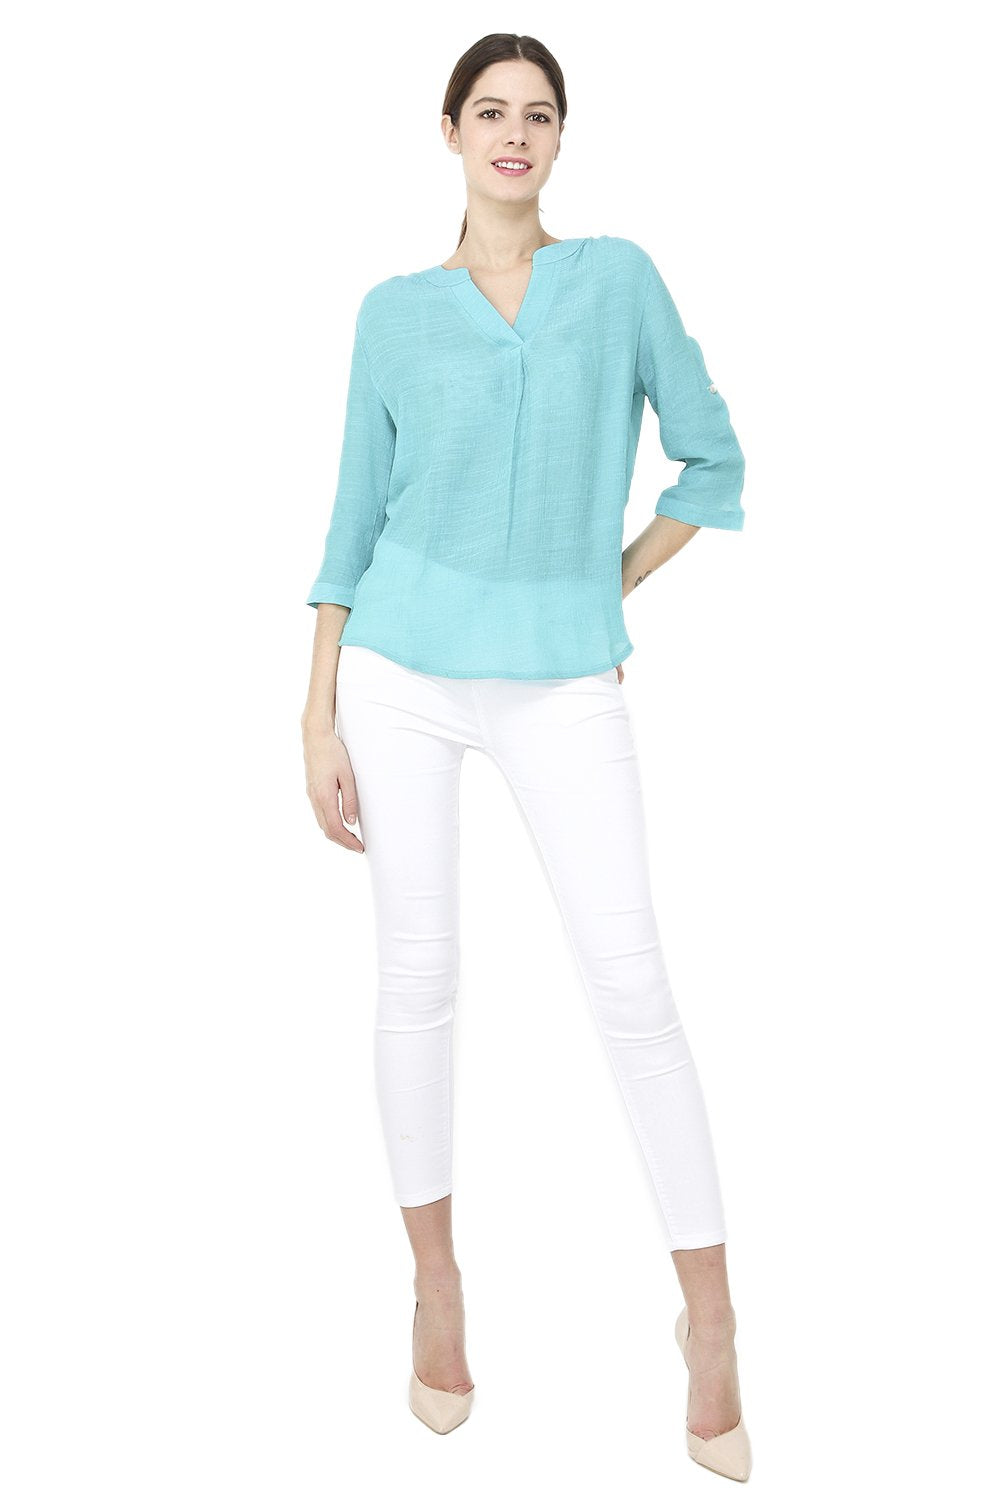 SEMI-TRANSPARENT TOP WITH TUNISIAN COLLAR AND 3/4 SLEEVES